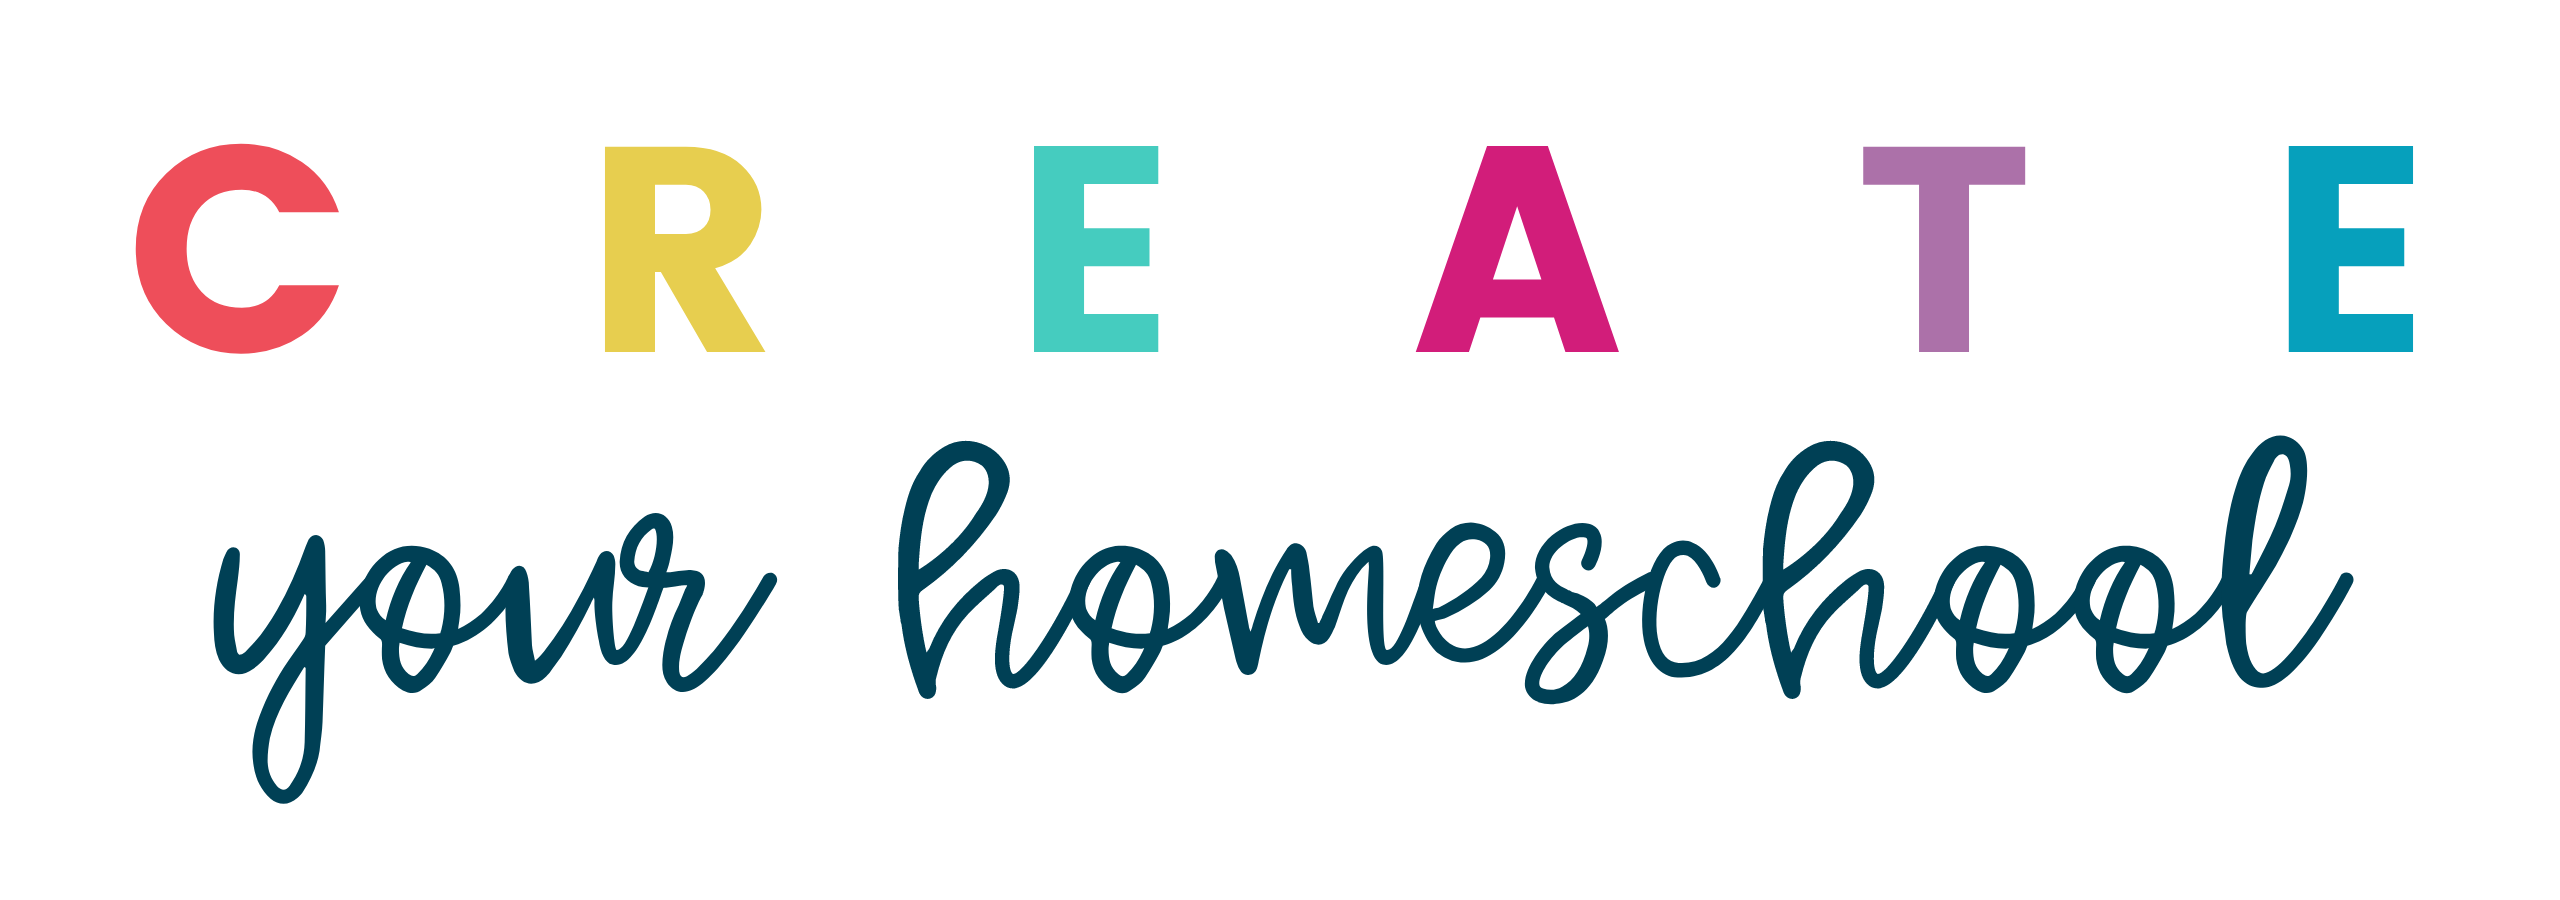 CREATE YOUR HOMESCHOOL